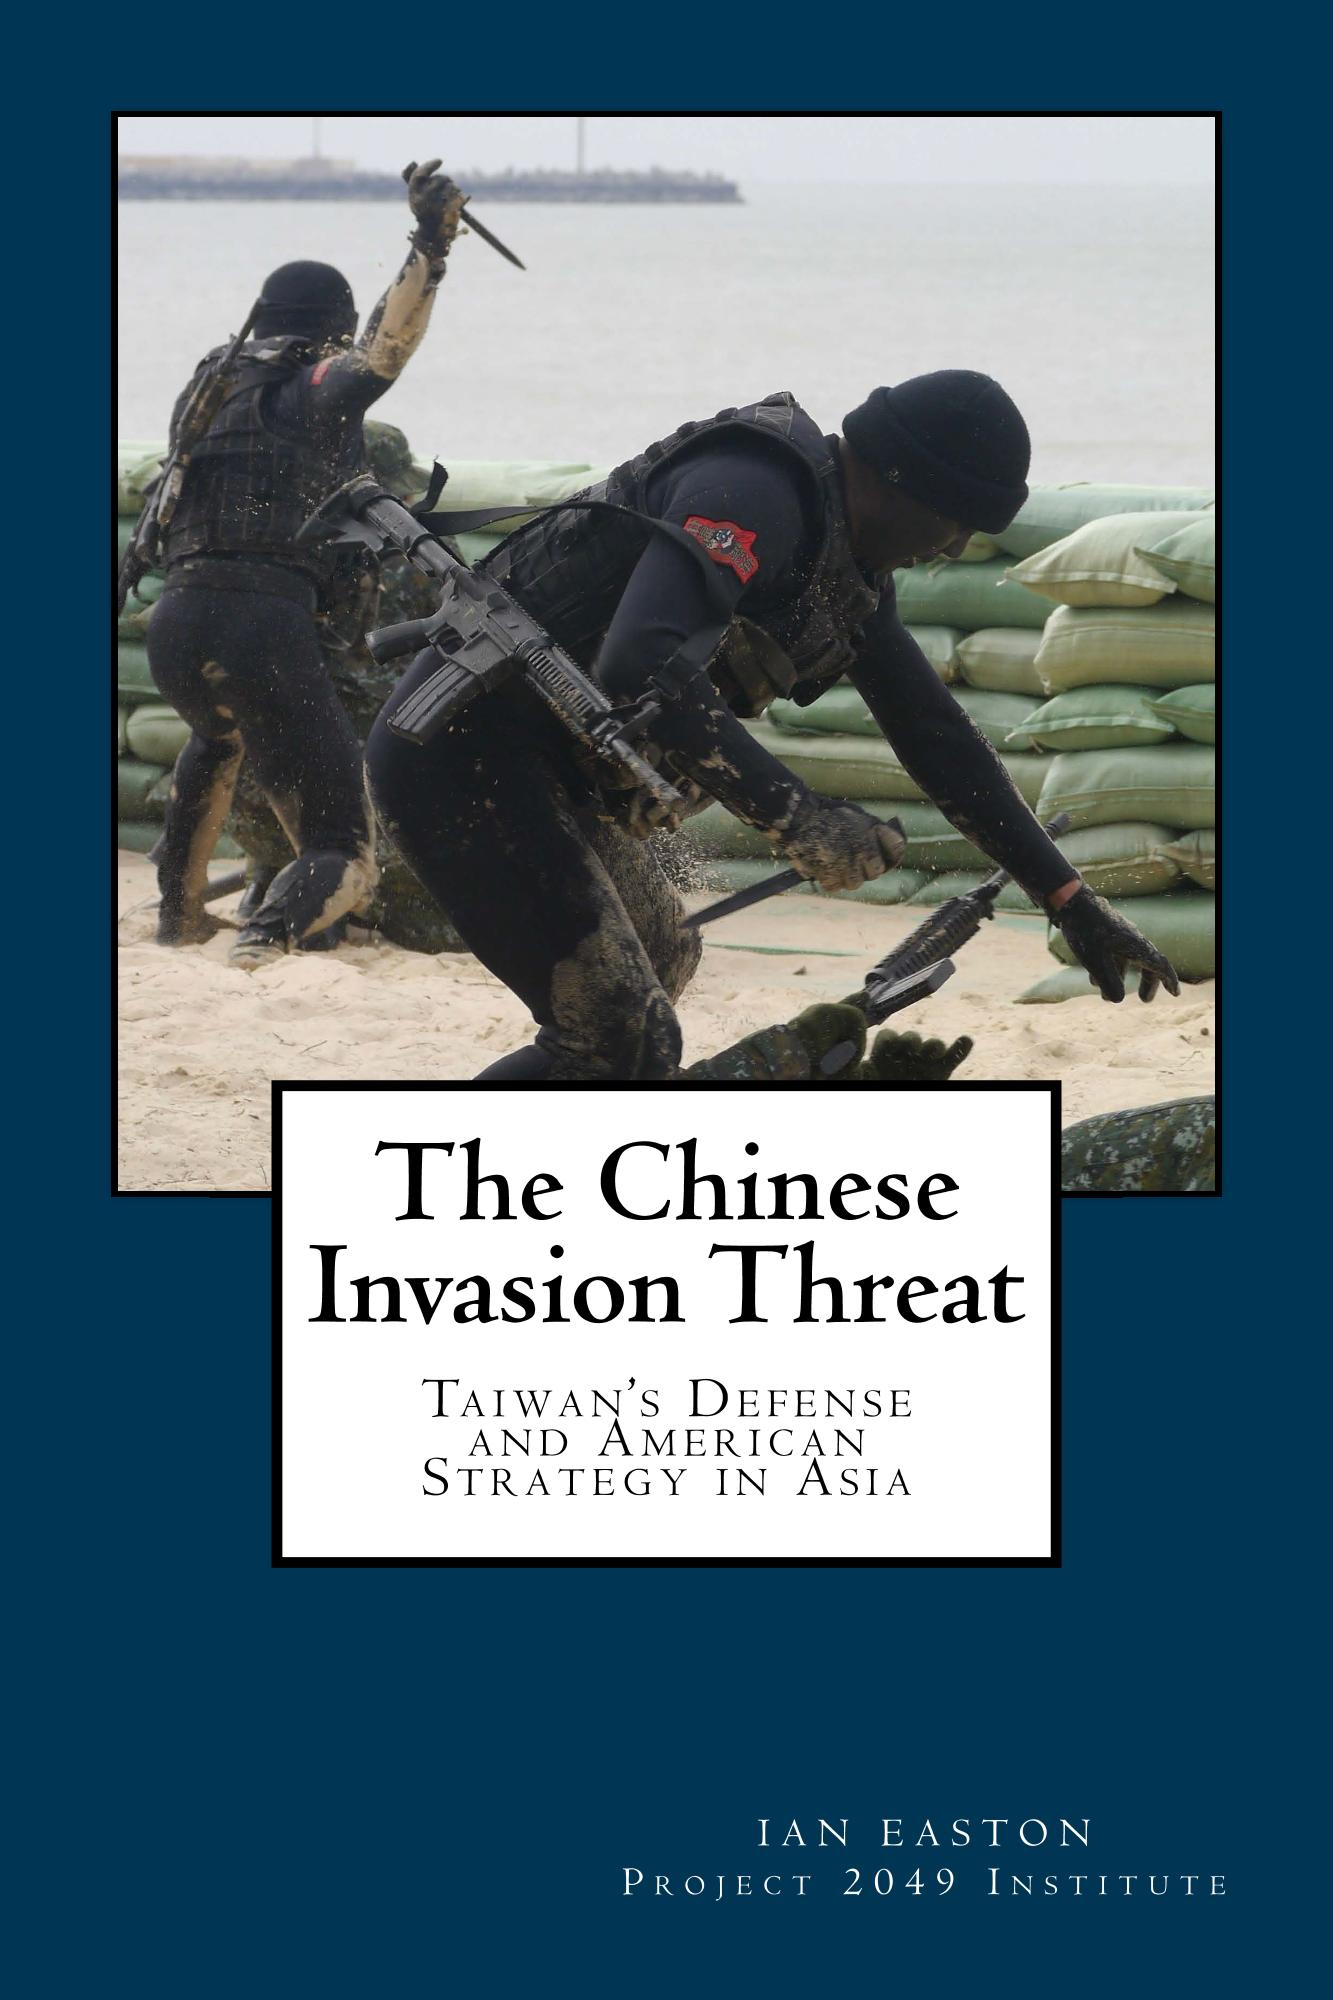 The cover of The Chinese Invasion Threat, by Ian Easton